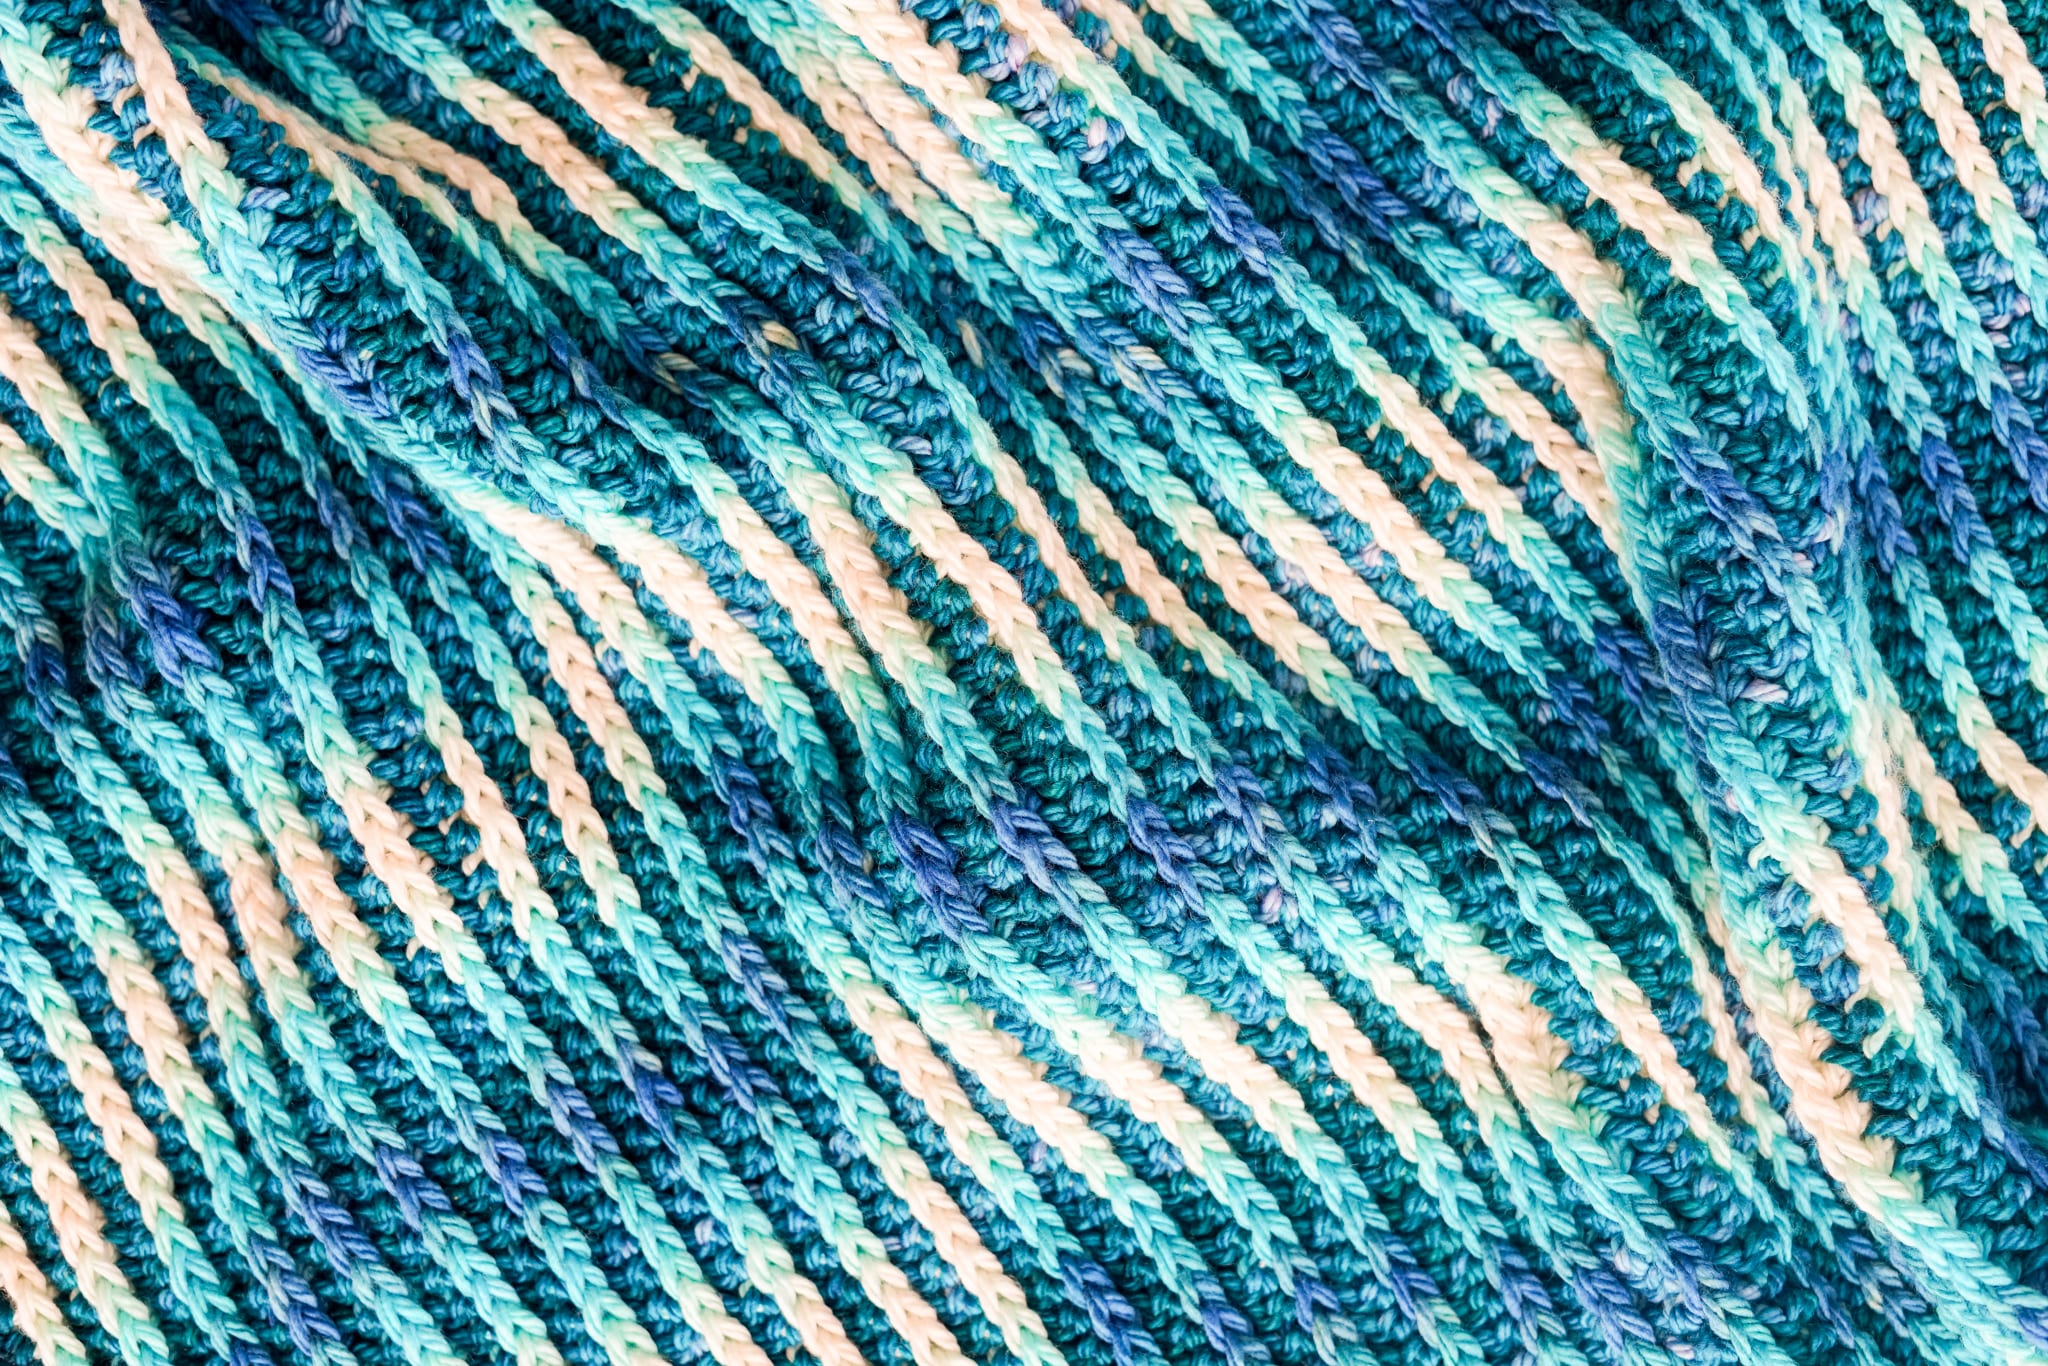 crochet blanket using hand dyed yarn and color pooling